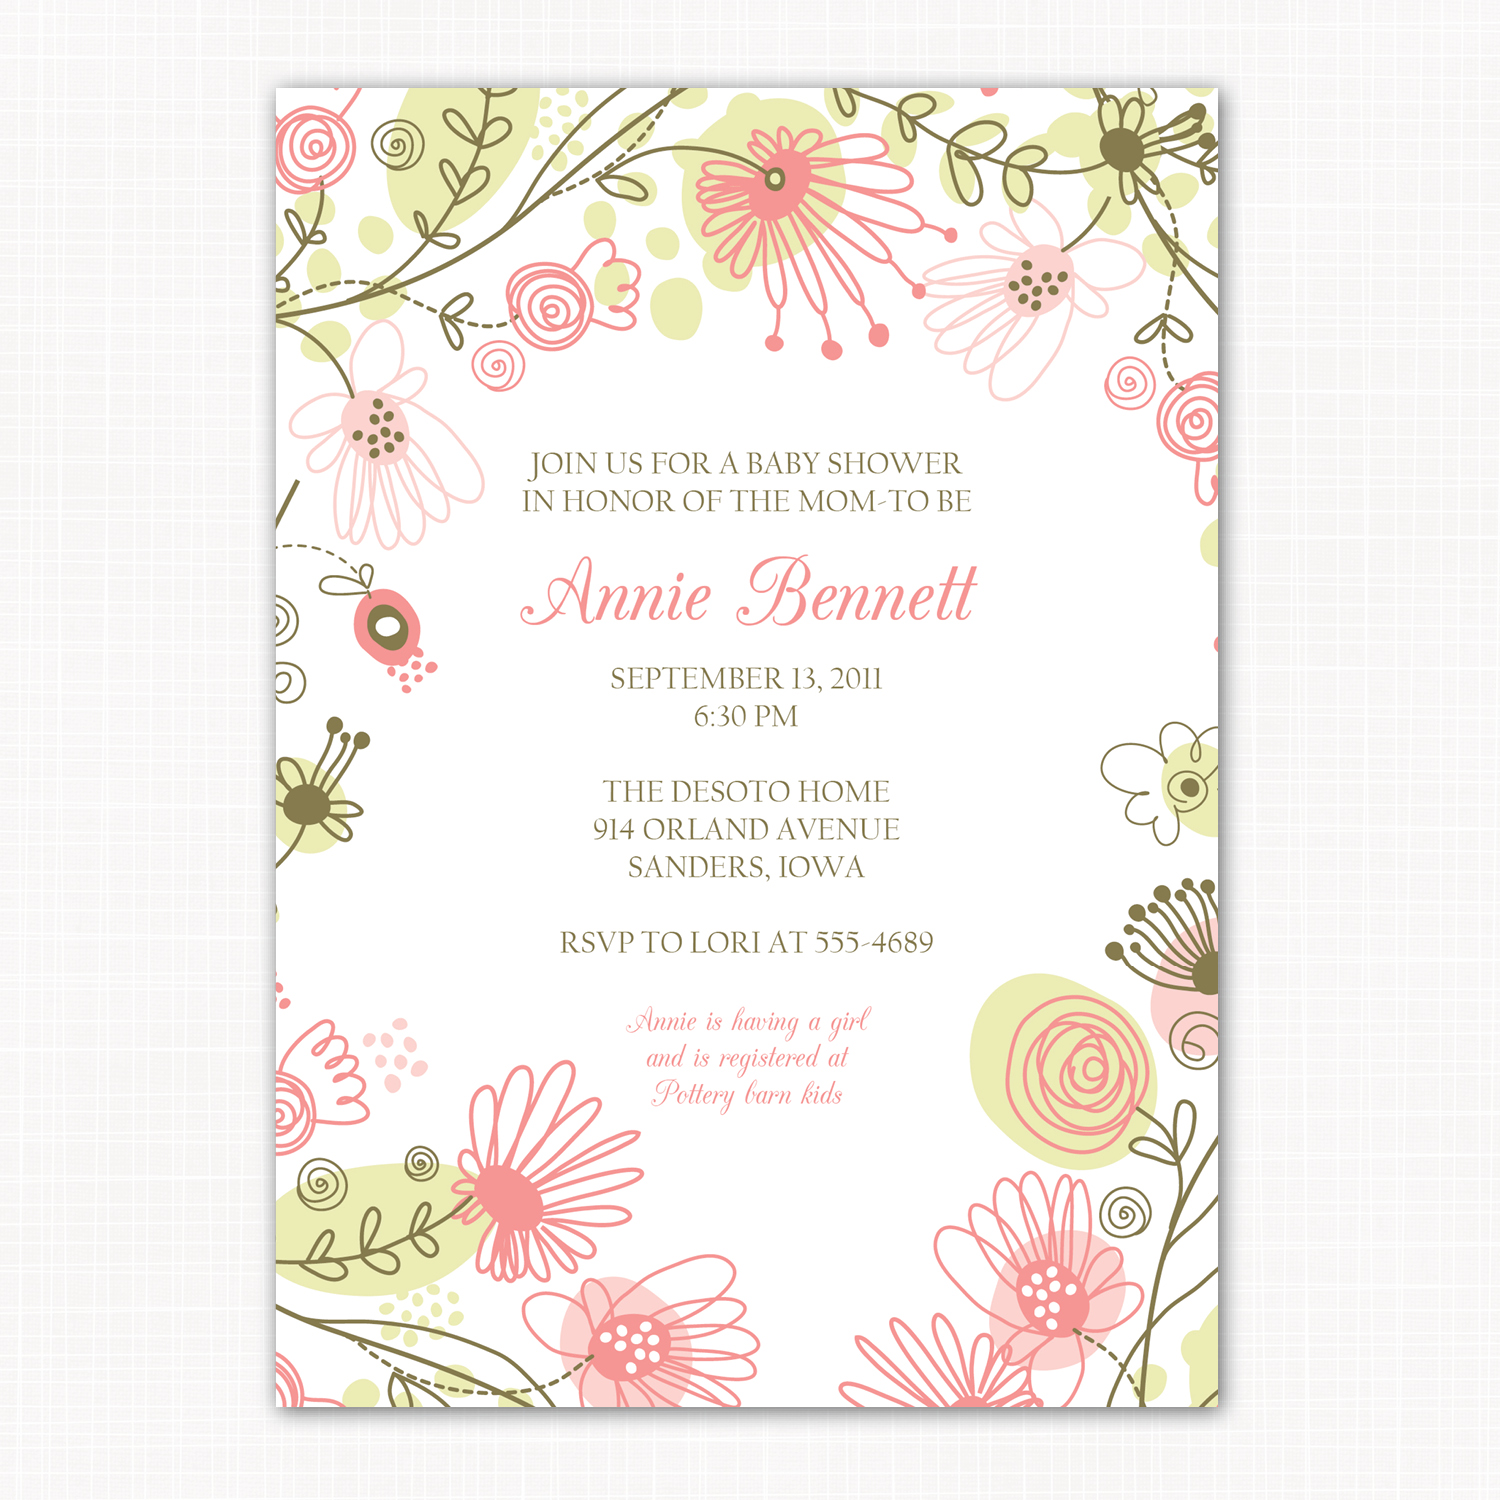 Designs: Modern baby girl shower invitations and birth announcements